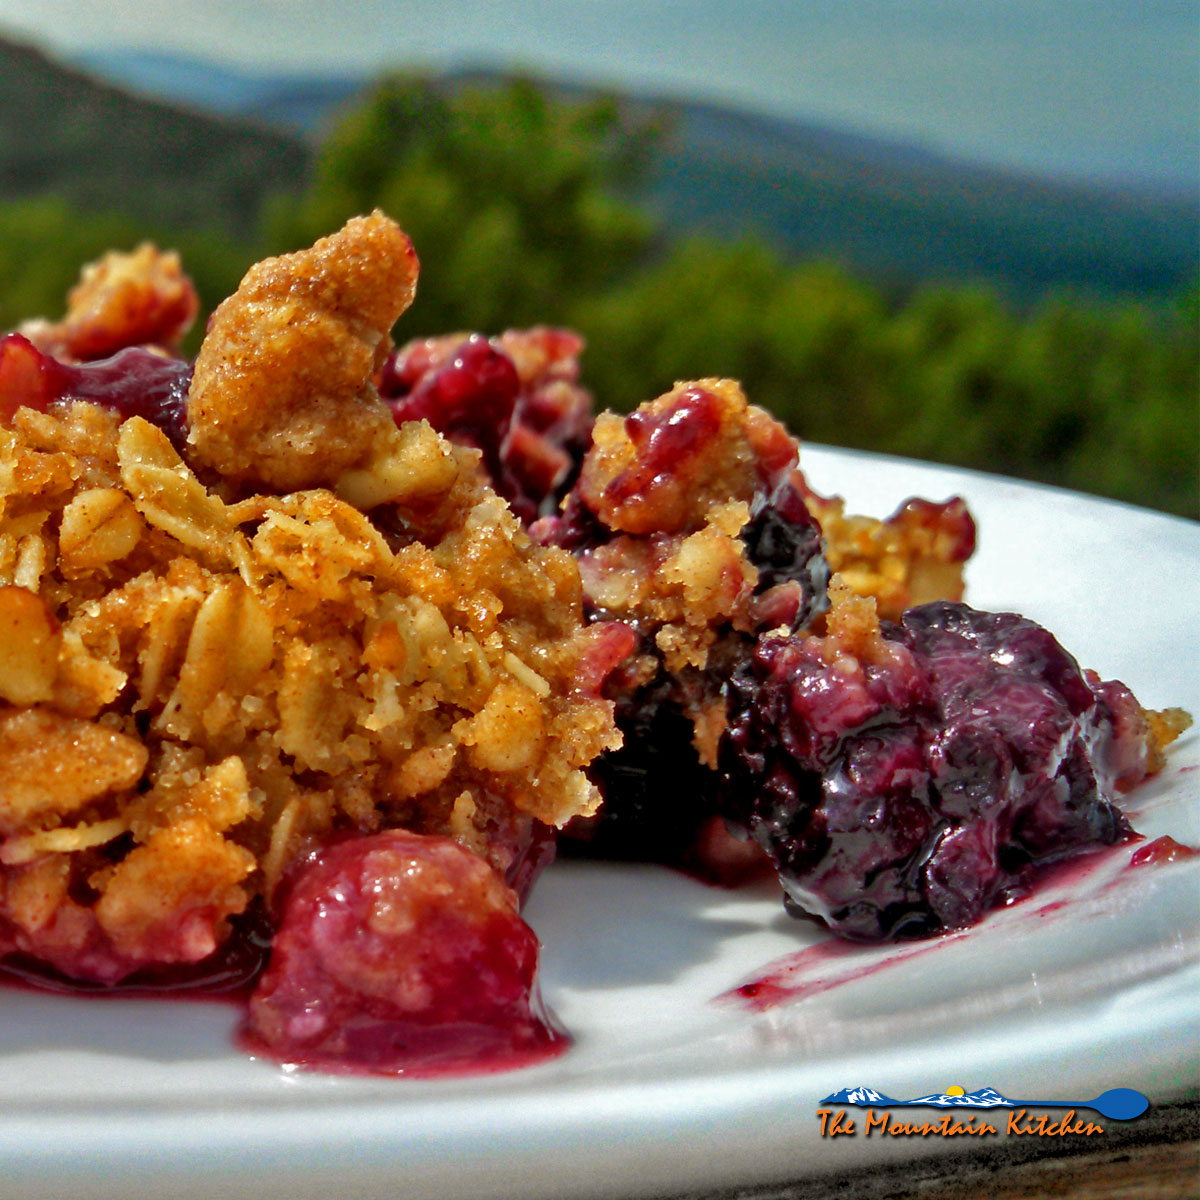 David's Blackberry Crisp With Farm Fresh Blackberries